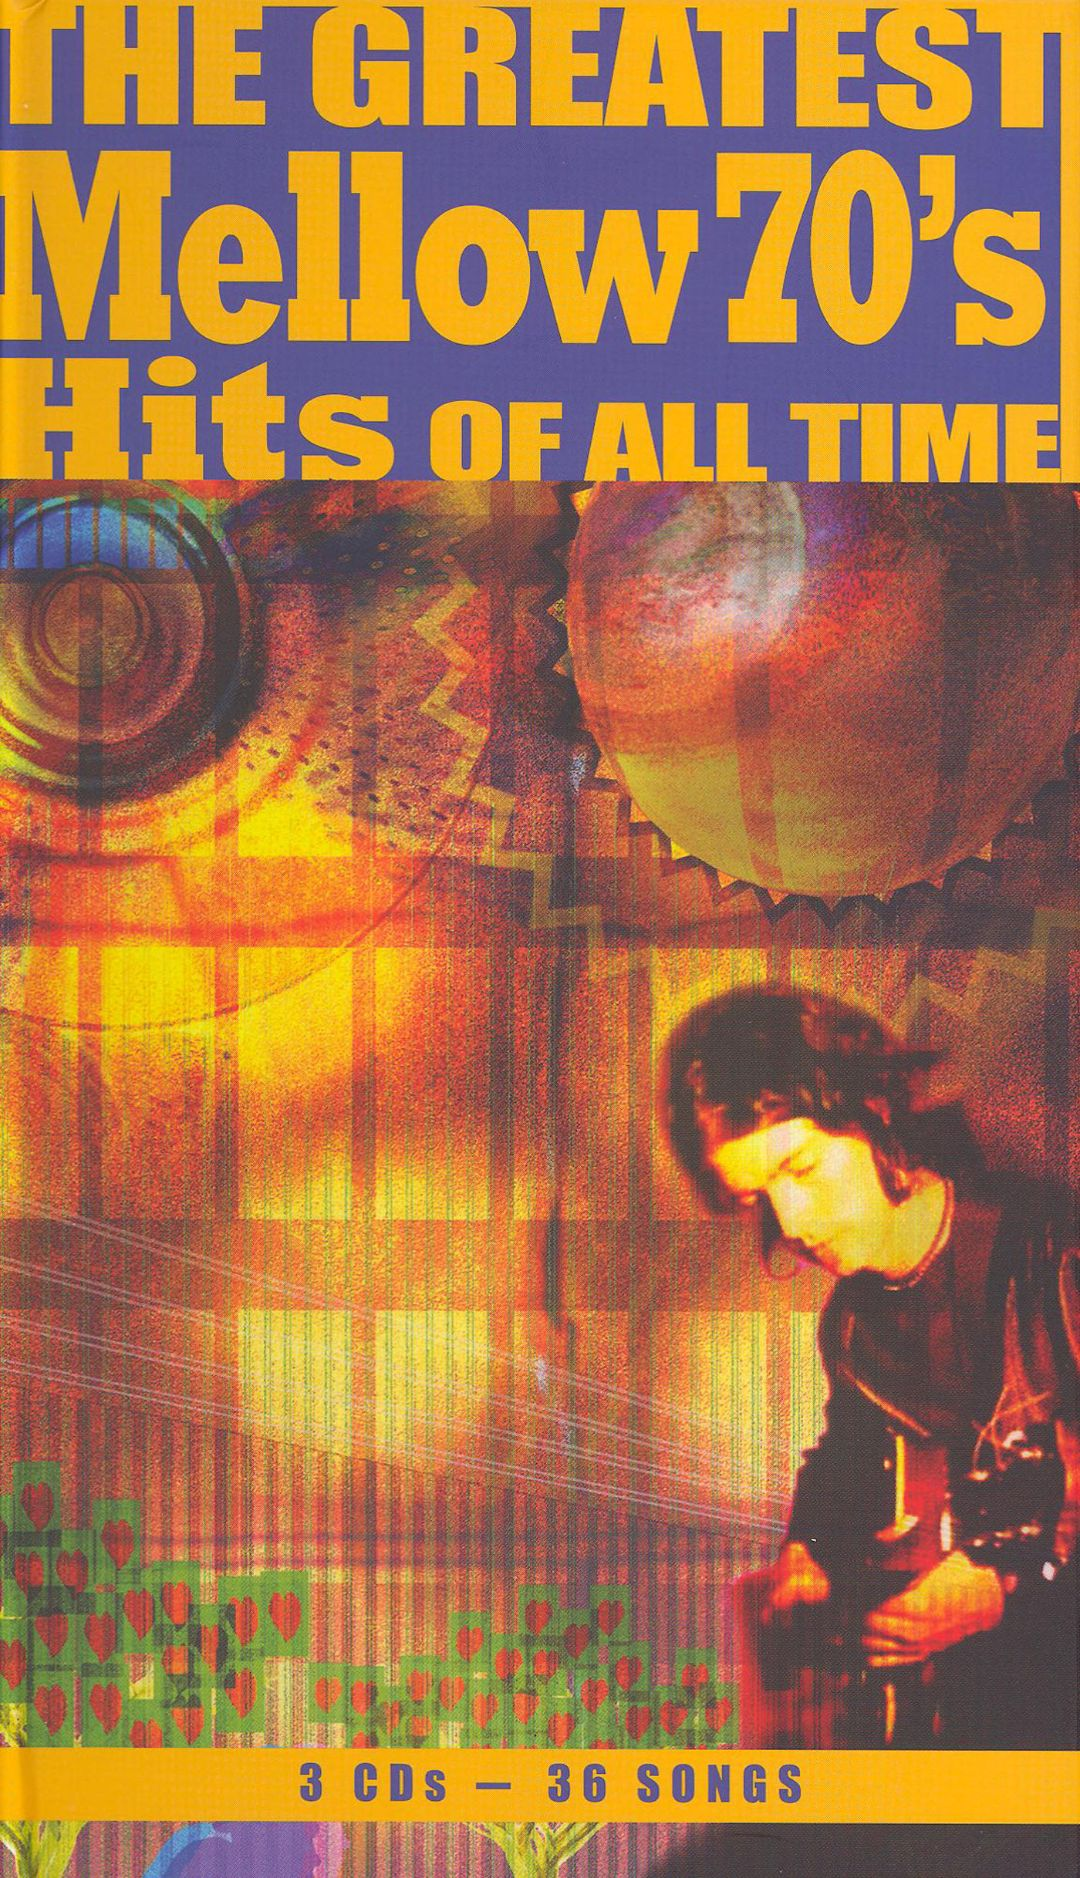 The Greatest Mellow 70's Hits of All Time - Various ...